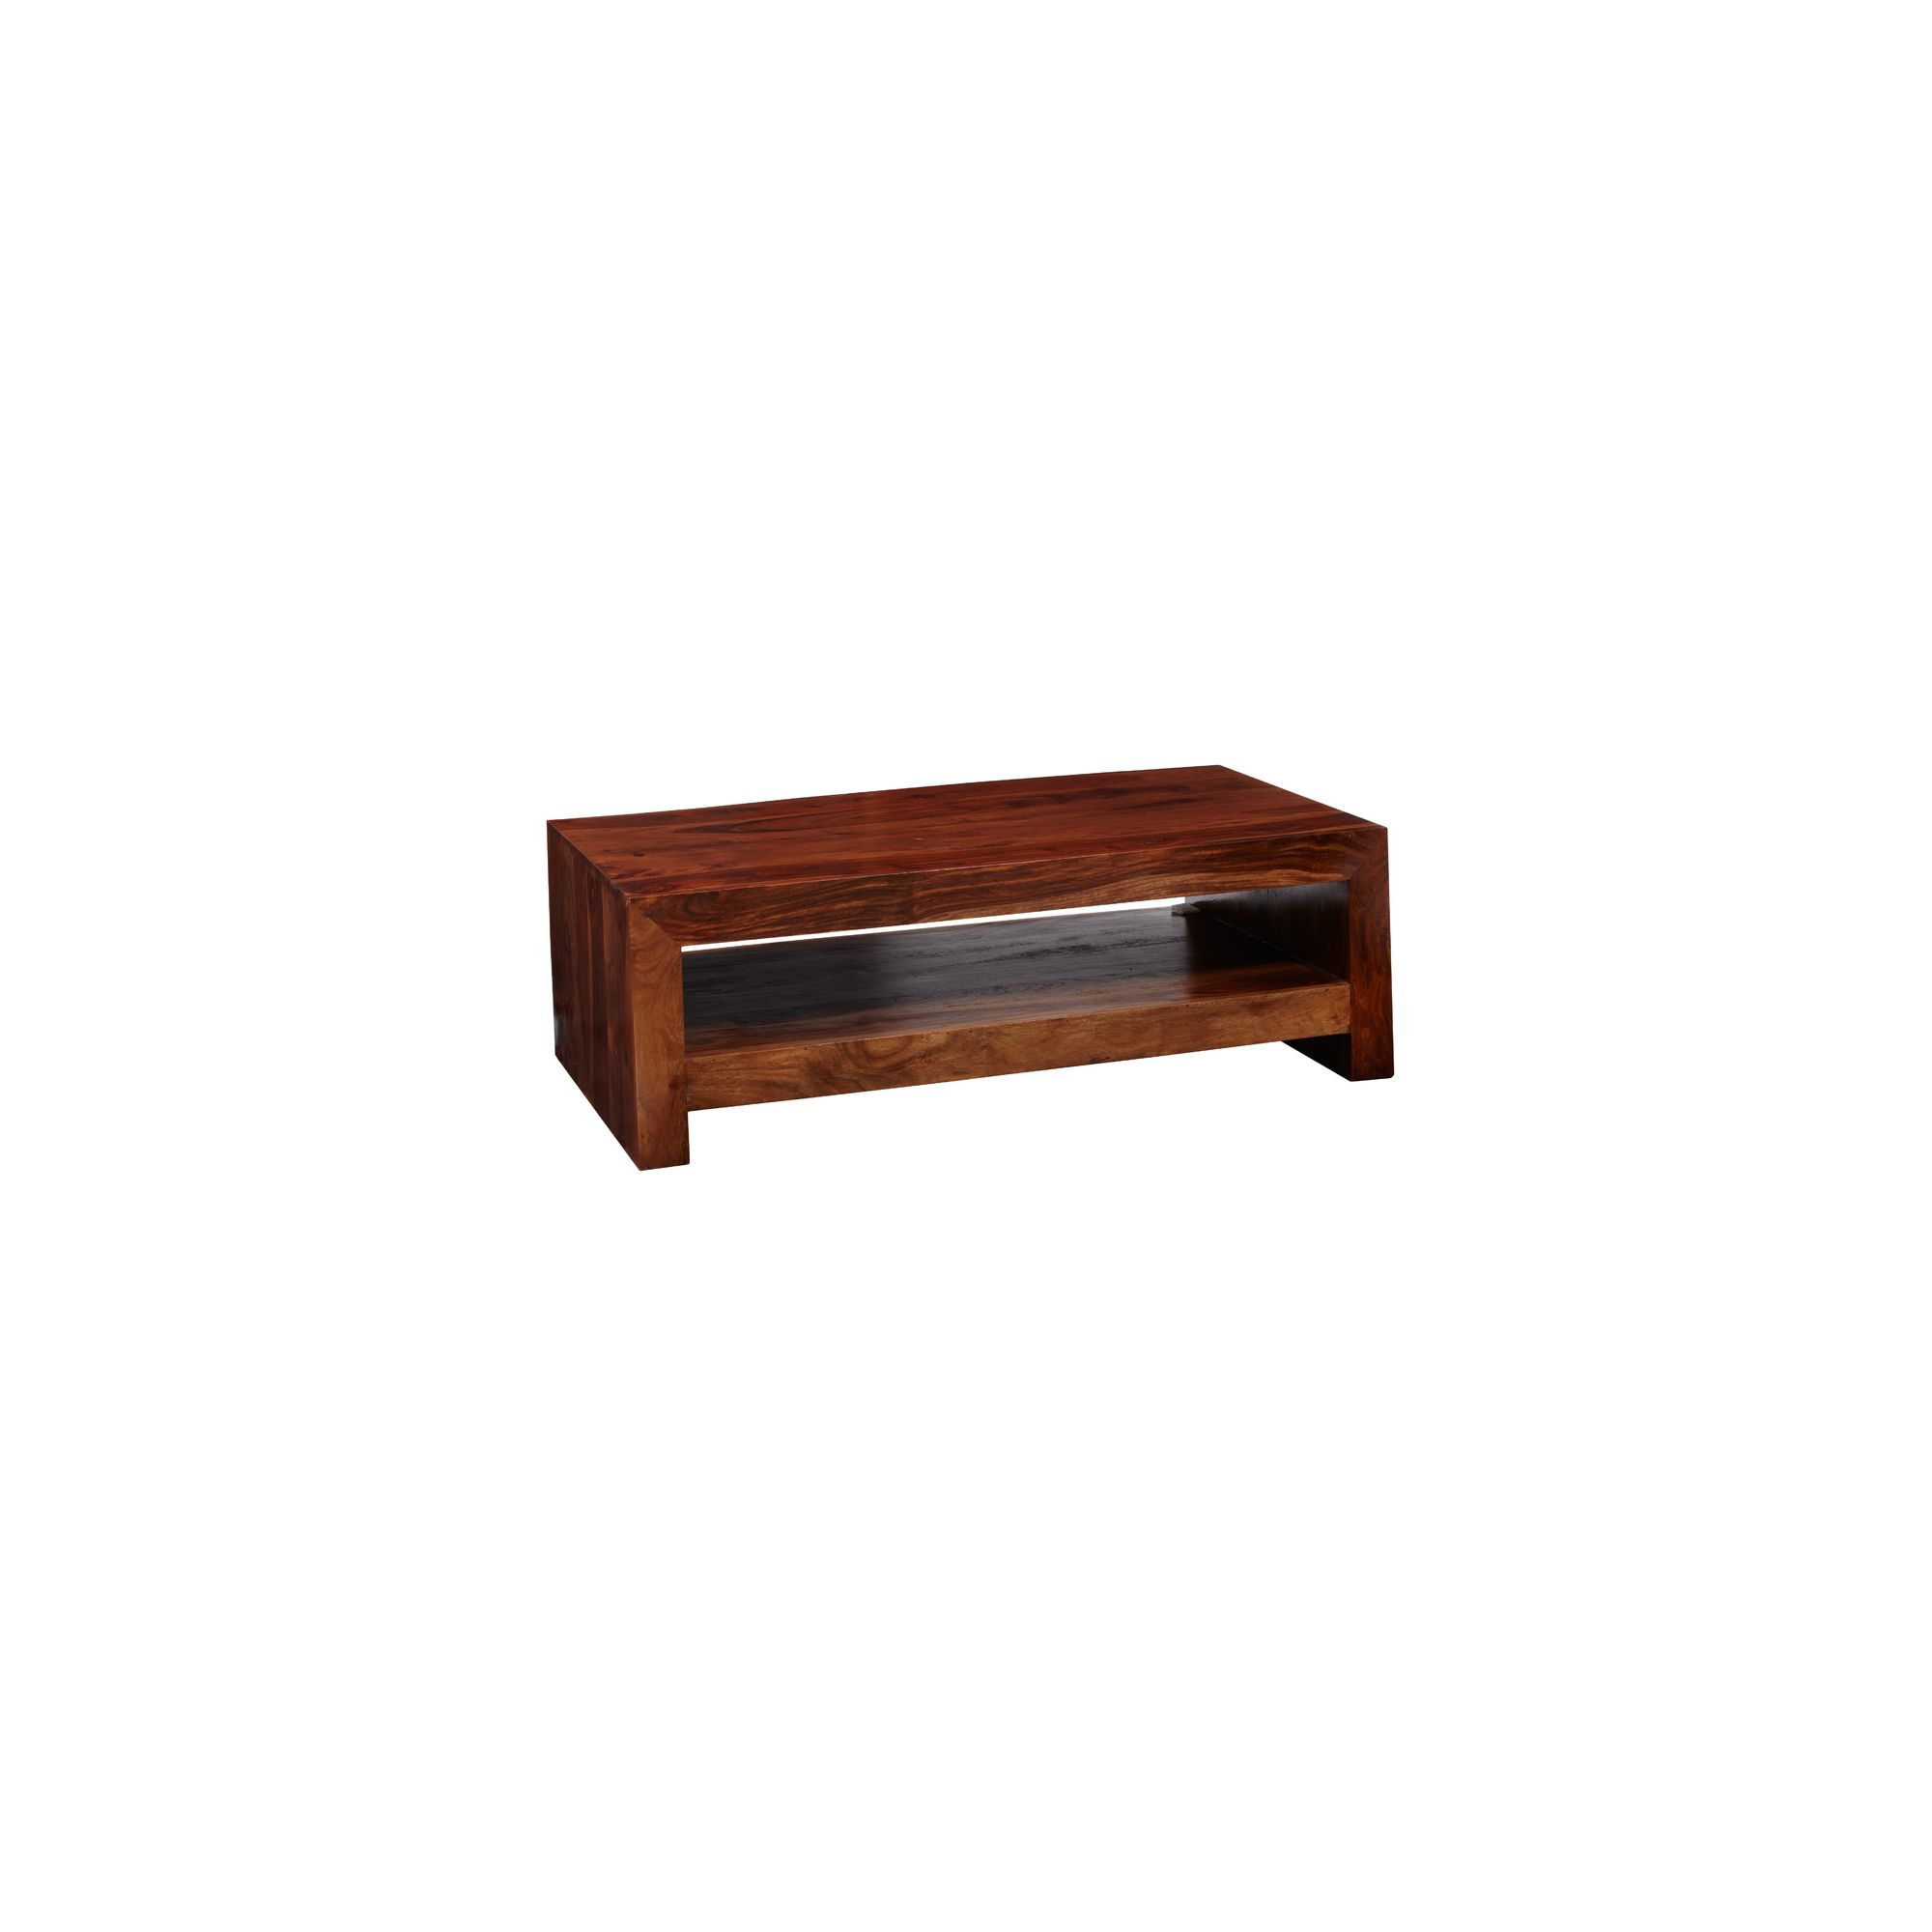 Indian Hub Cube Sheesham Contemporary Coffee Table at Tesco Direct